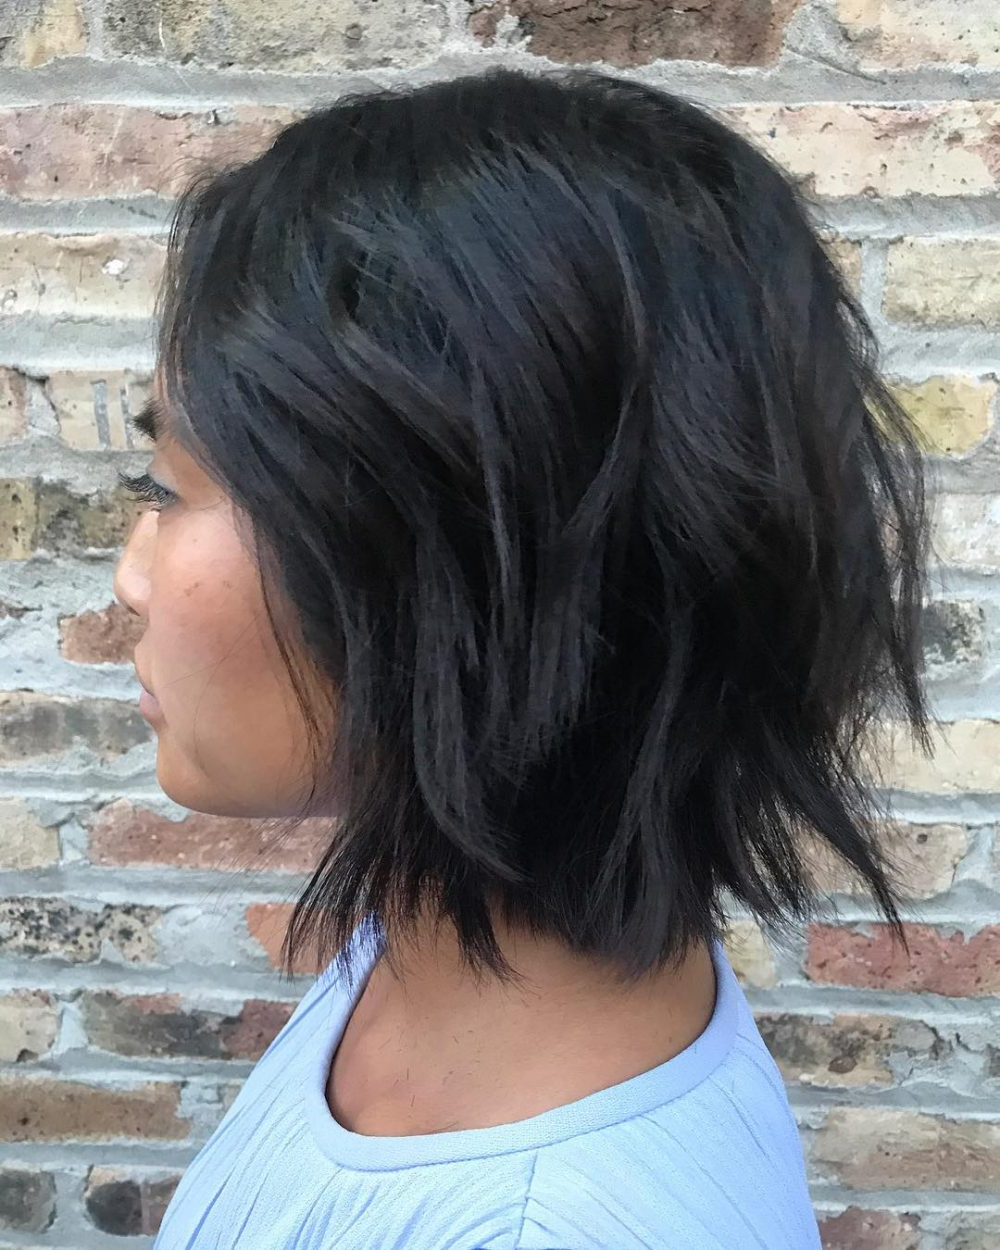 45 Chic Choppy Bob Hairstyles For 2018 With Regard To Disheveled Brunette Choppy Bob Hairstyles (Gallery 12 of 20)